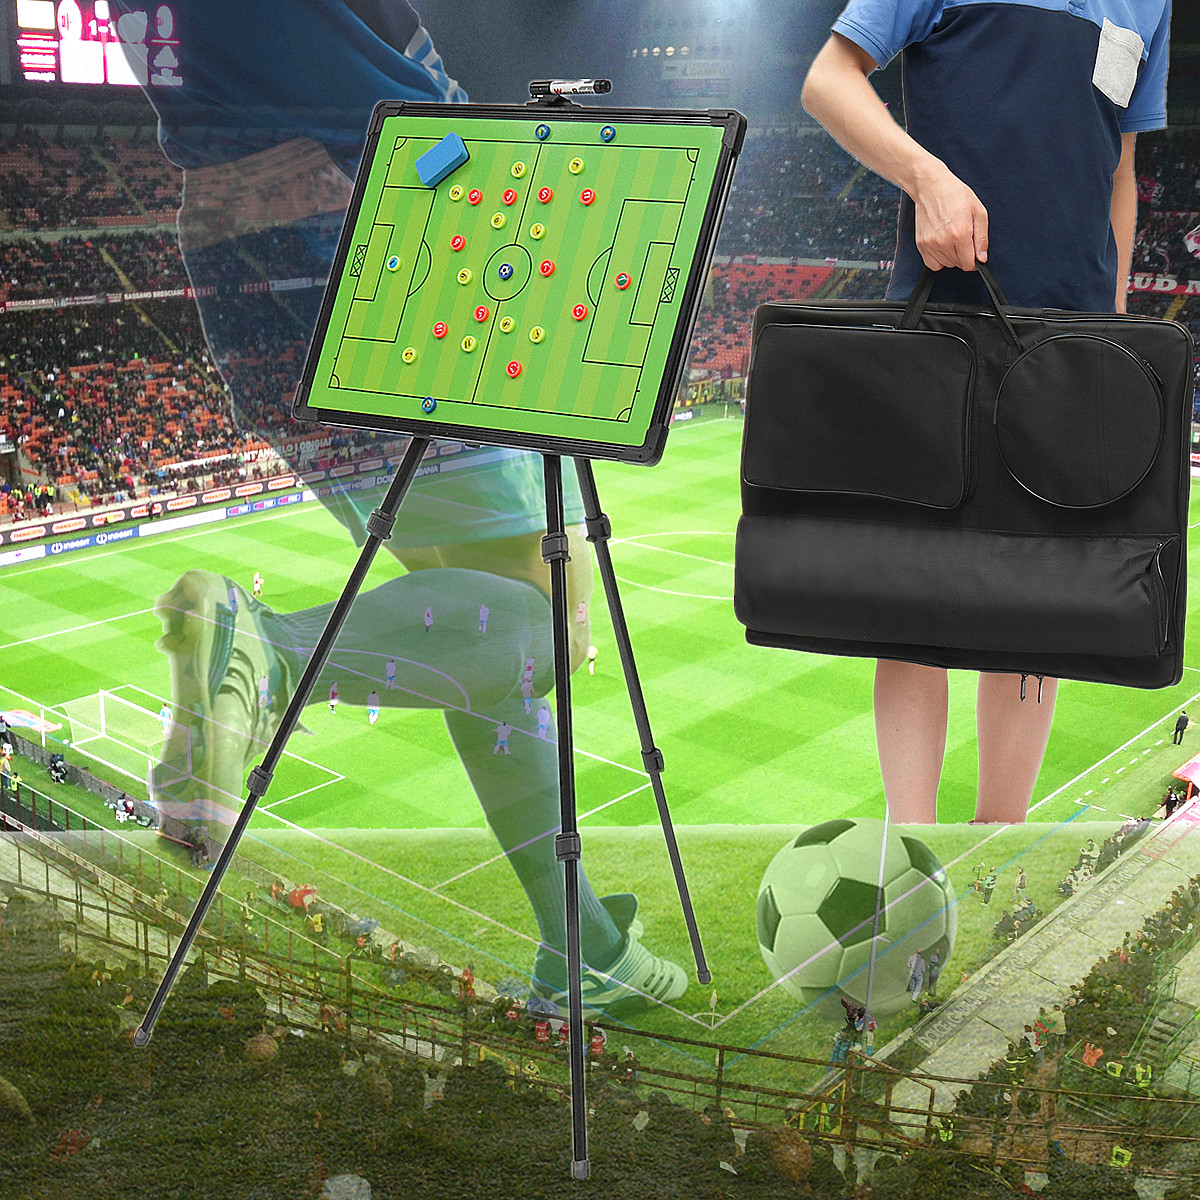 Professional Football Tactical Coaching Board Training Guidance Magnetic Buttons w/Tripod Stainless Steel+PVC Portable 60x45cm greg bach coaching football for dummies